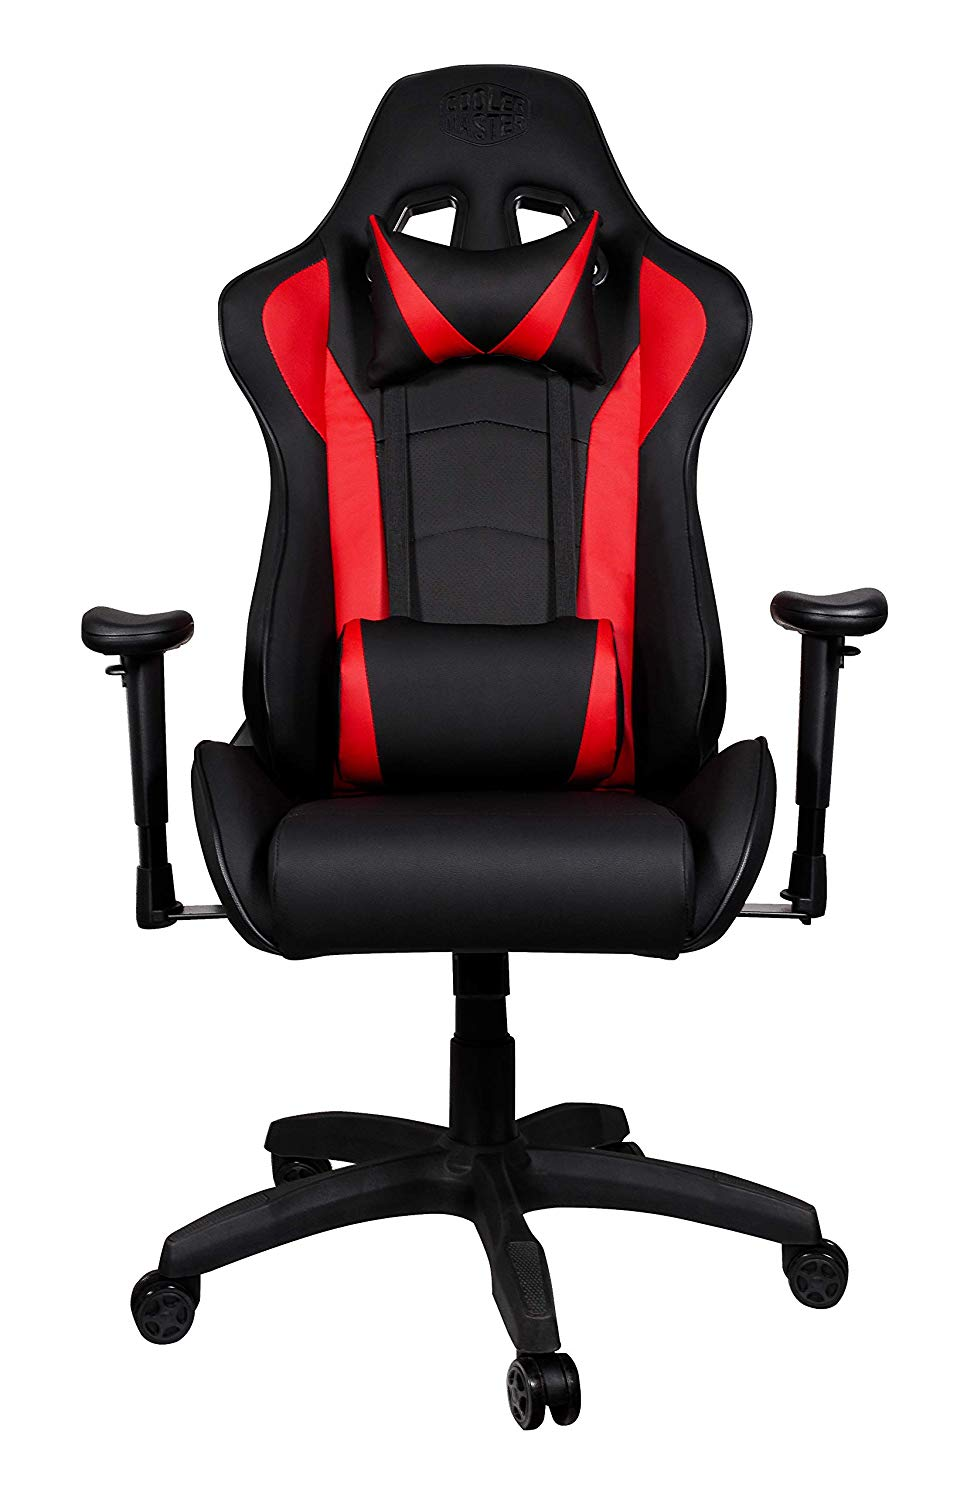 COOLER MASTER GAMING CHAIR CALIBER R1 BLACK/RED